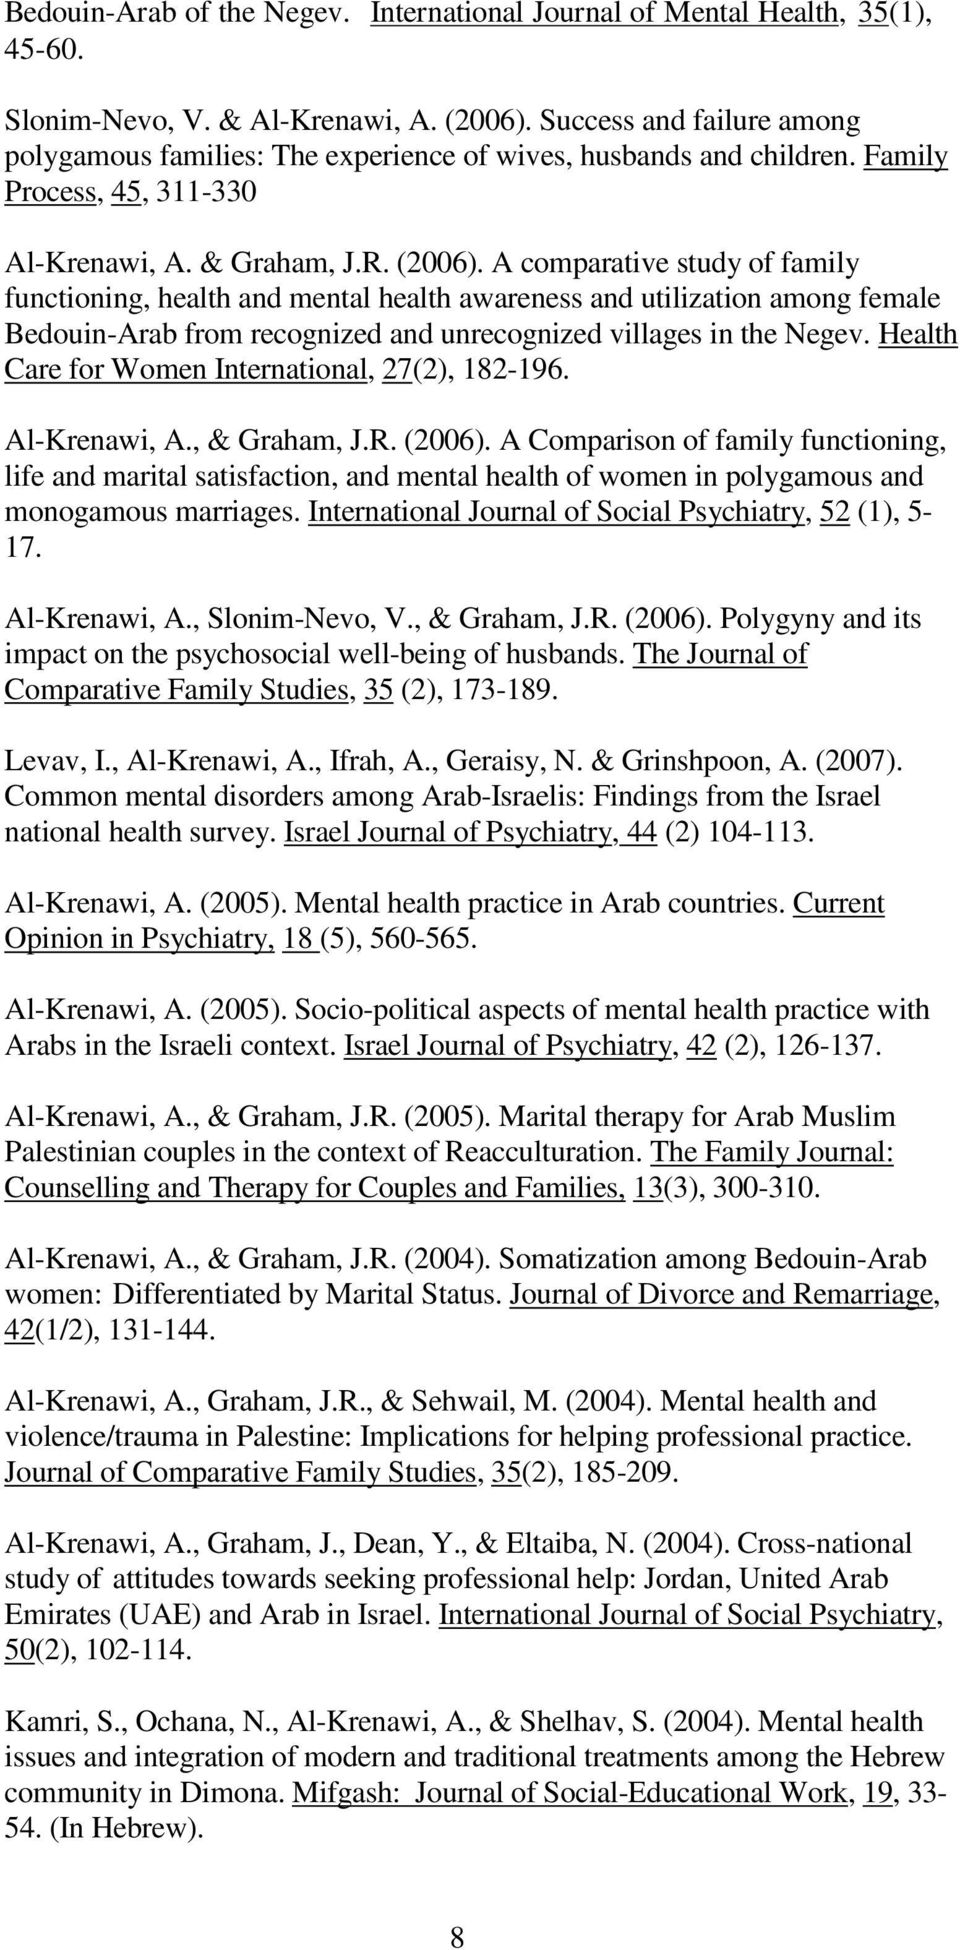 A comparative study of family functioning, health and mental health awareness and utilization among female Bedouin-Arab from recognized and unrecognized villages in the Negev.